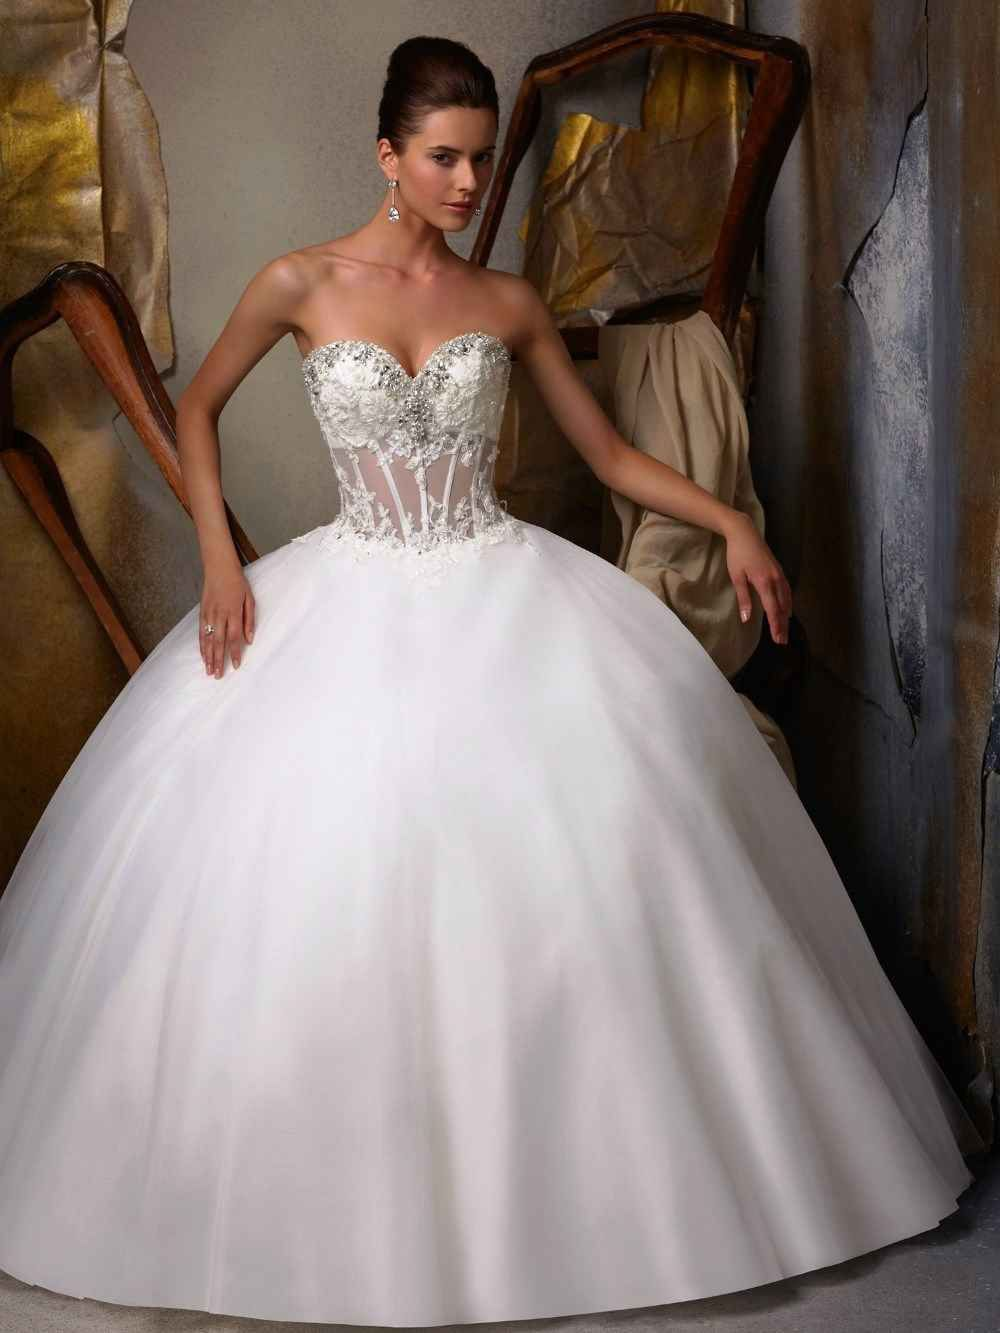 55+ Huge Ball Gown Wedding Dresses - Wedding Dresses for Fall Check ...